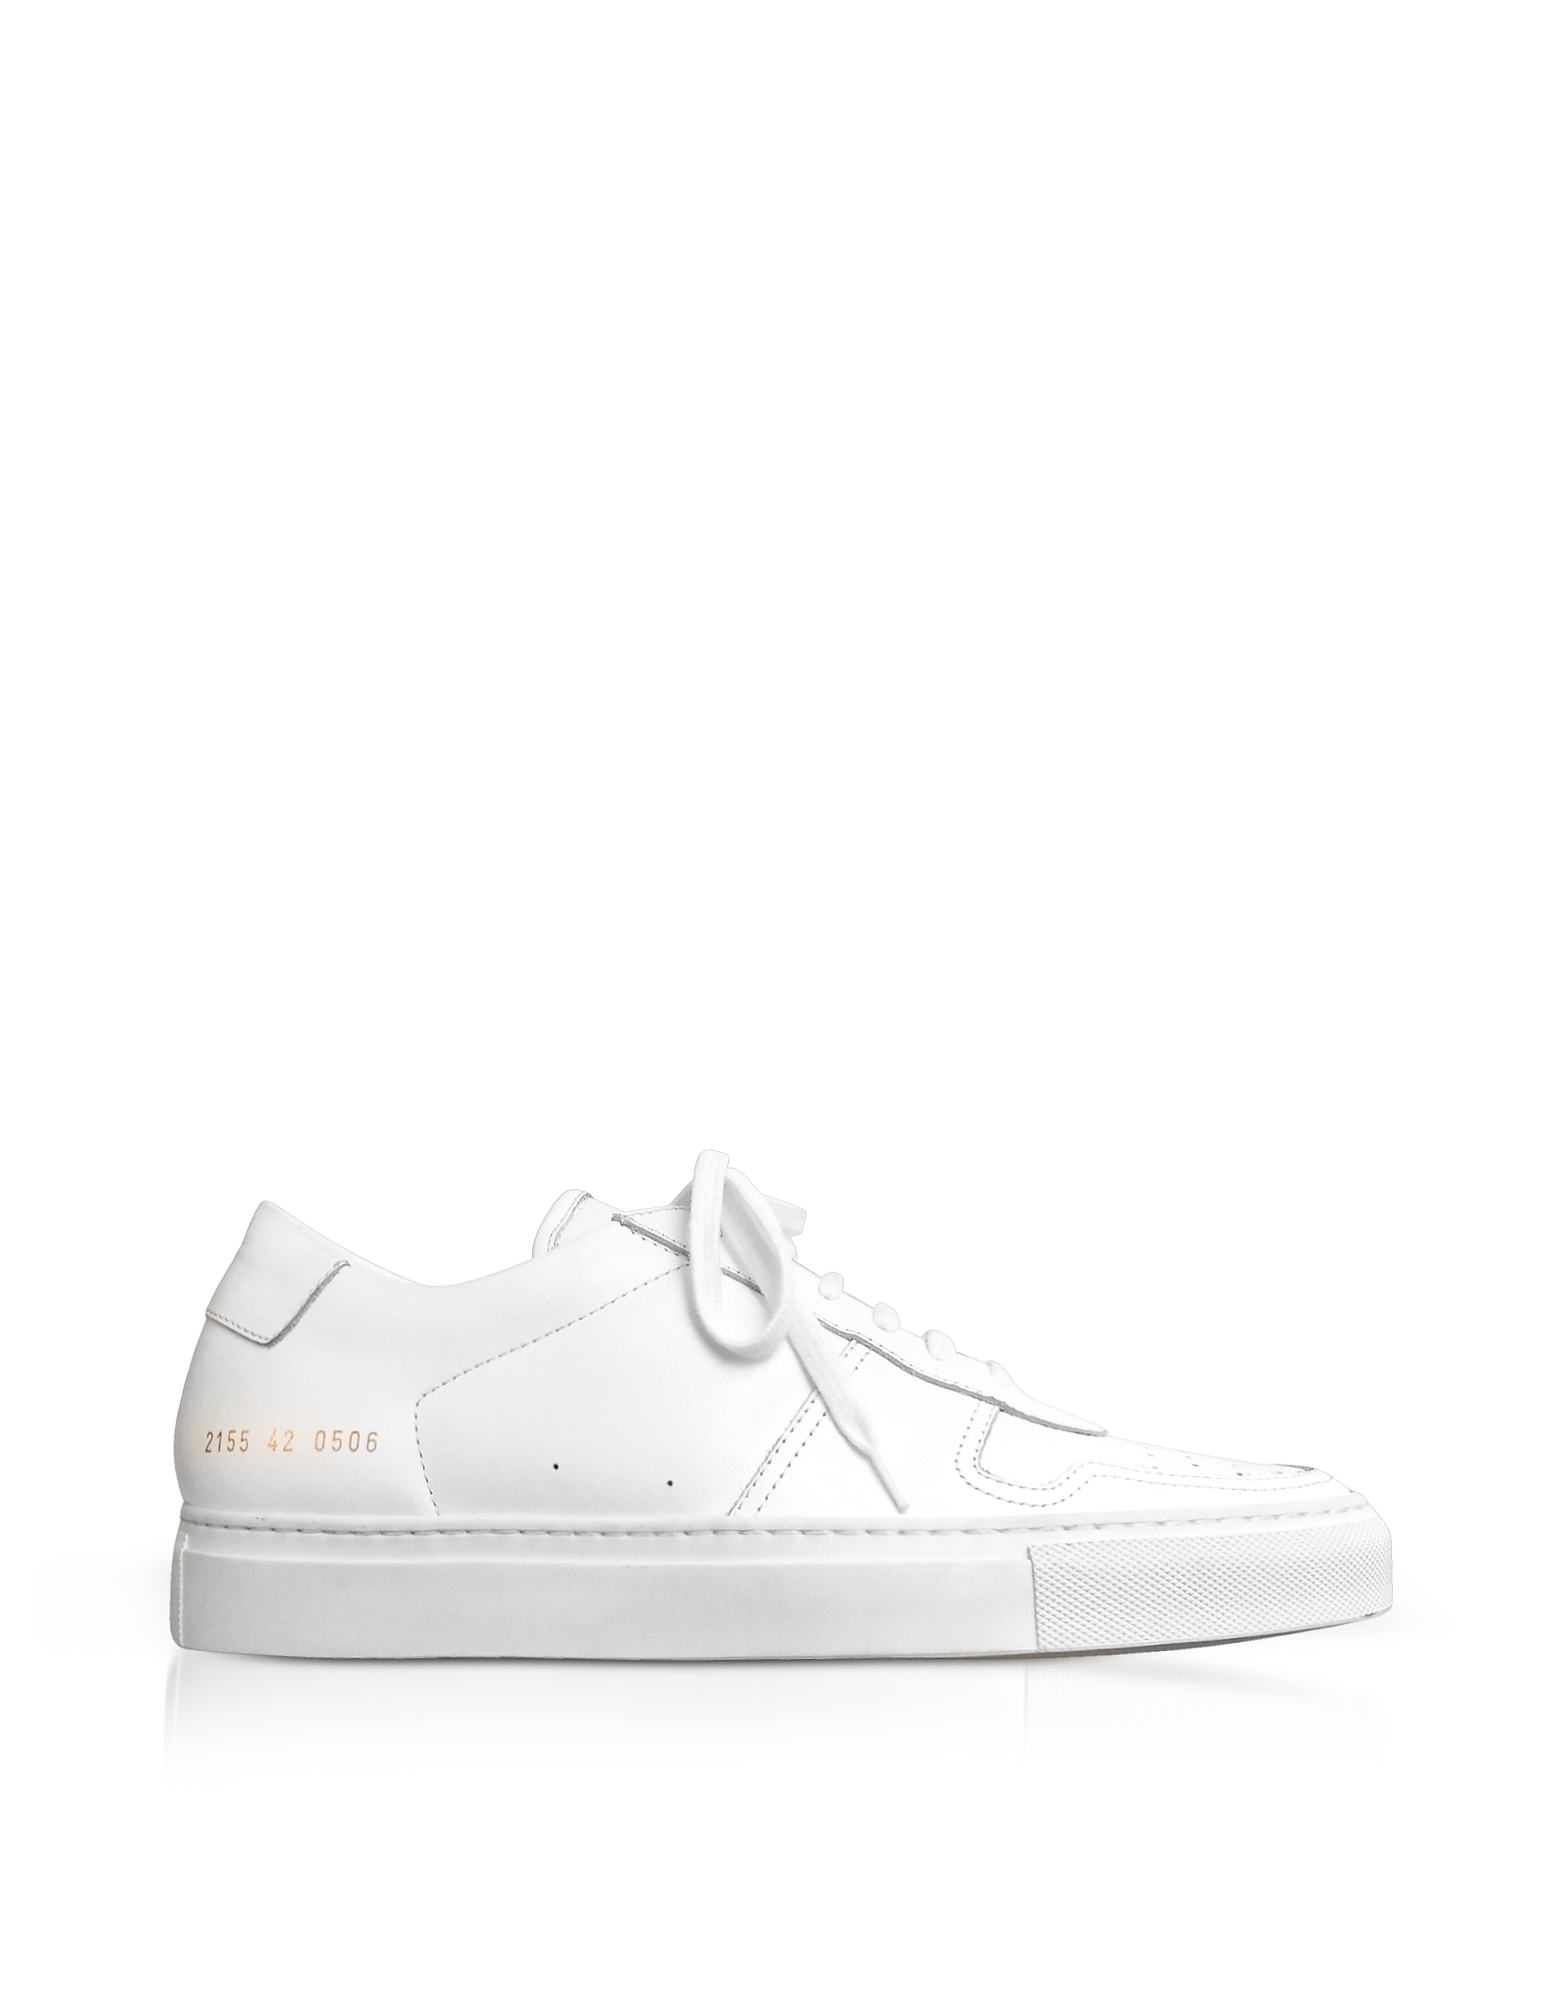 Common Projects Shoes, Bball Low White Leather Men's Sneakers